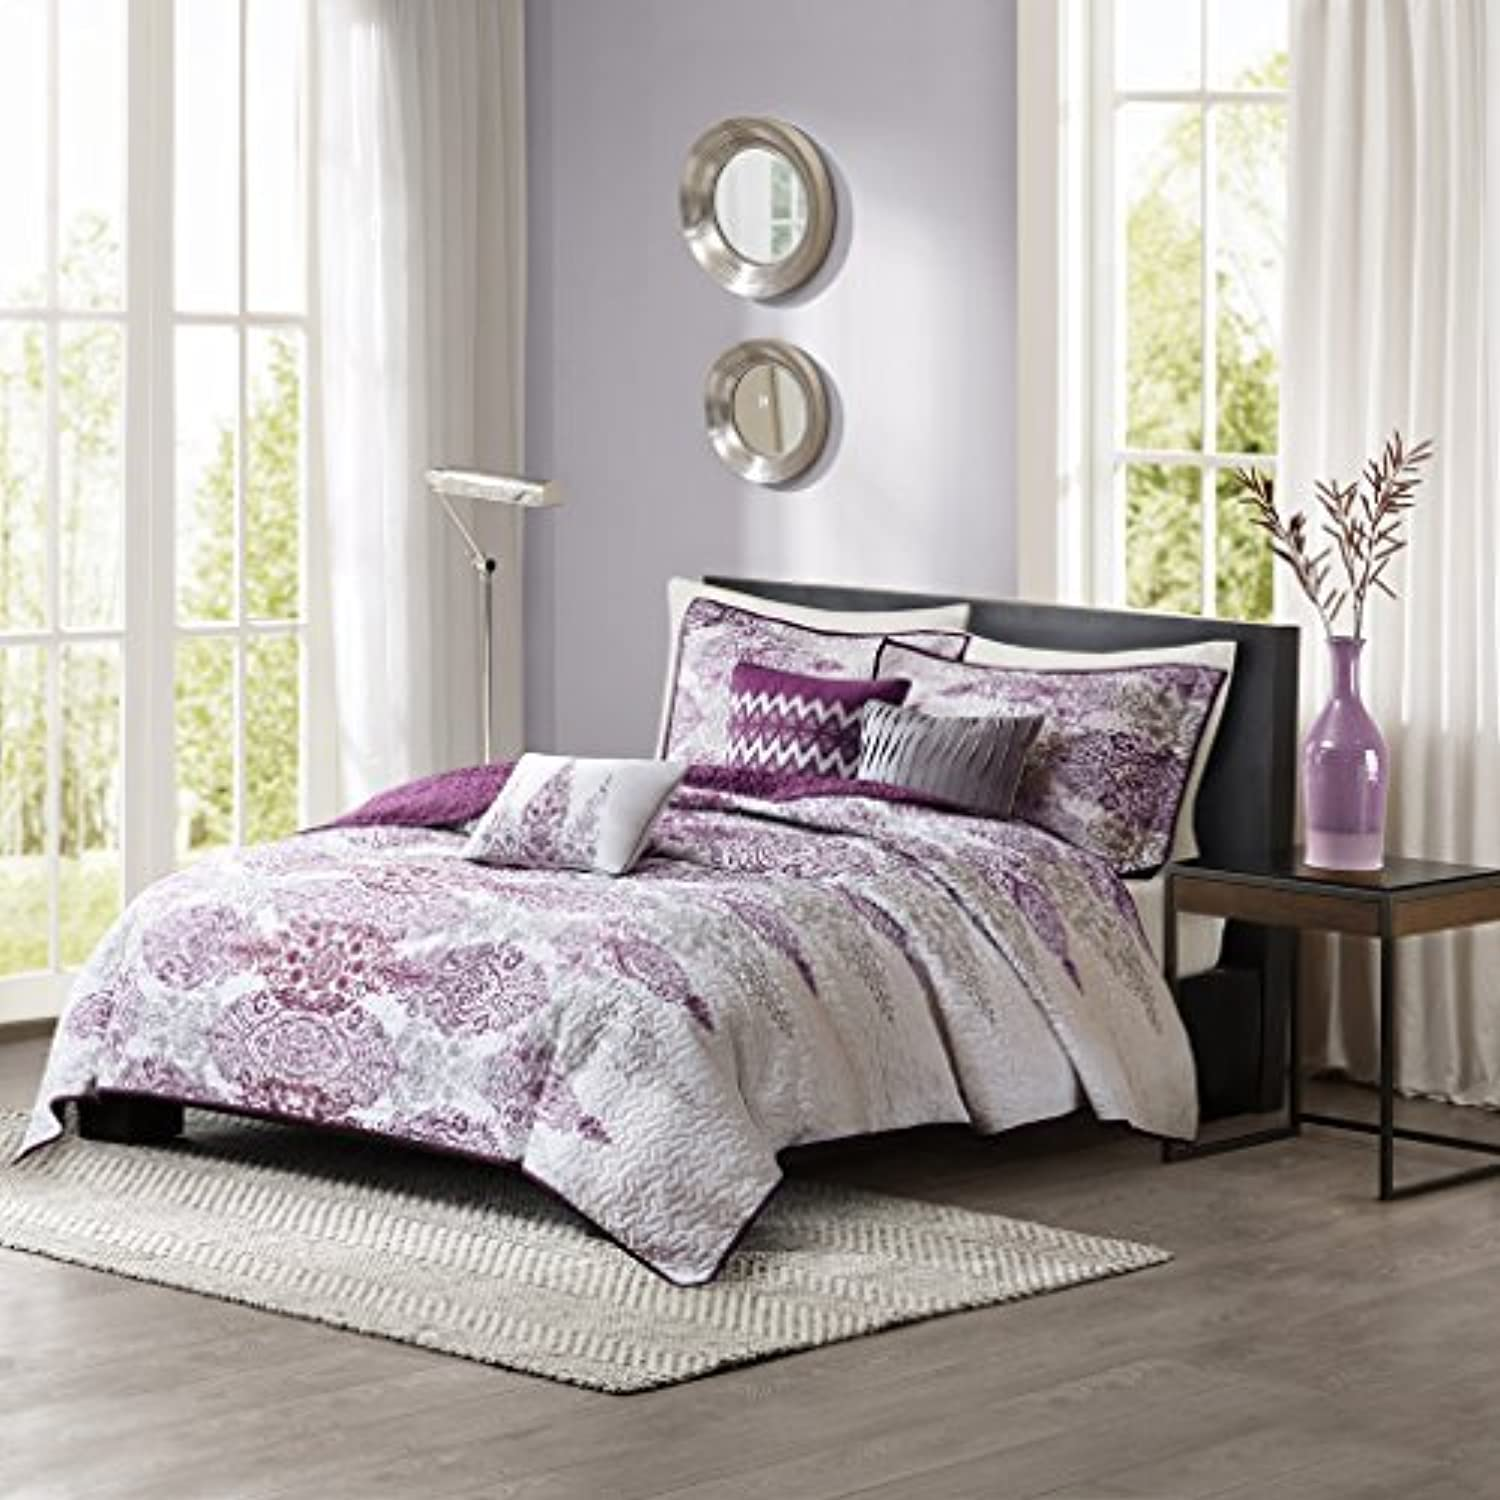 Madison Park Sonali King Cal King Size Quilt Bedding Set - Purple, Floral Damask – 6 Piece Bedding Quilt Coverlets – Ultra Soft Microfiber Bed Quilts Quilted Coverlet